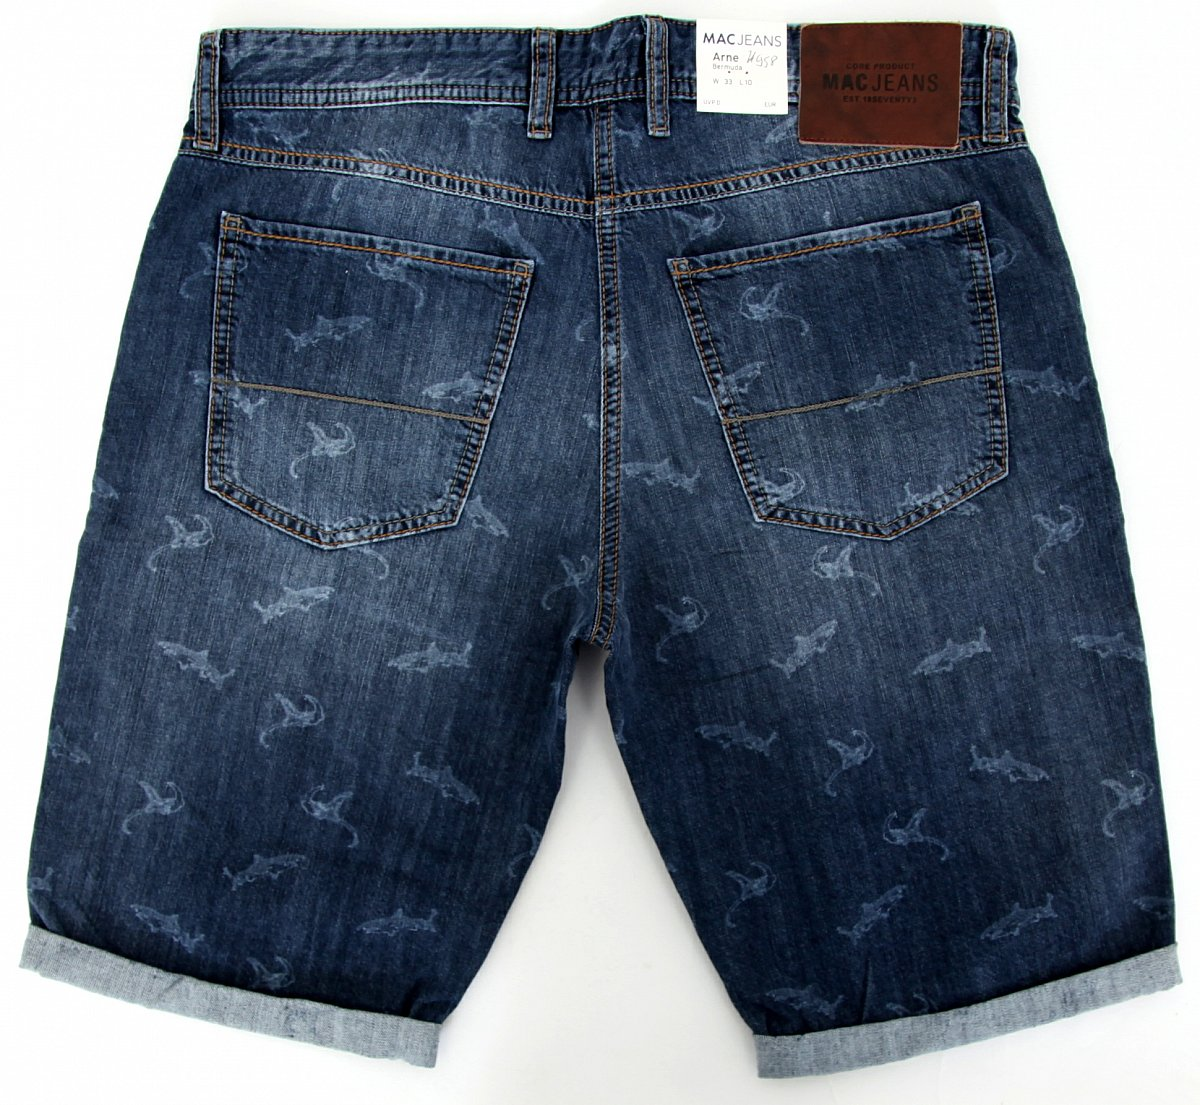 mac jeans herren hose kurz w33 l10 shorts arne bermuda 090852 h958 denim blue ebay. Black Bedroom Furniture Sets. Home Design Ideas